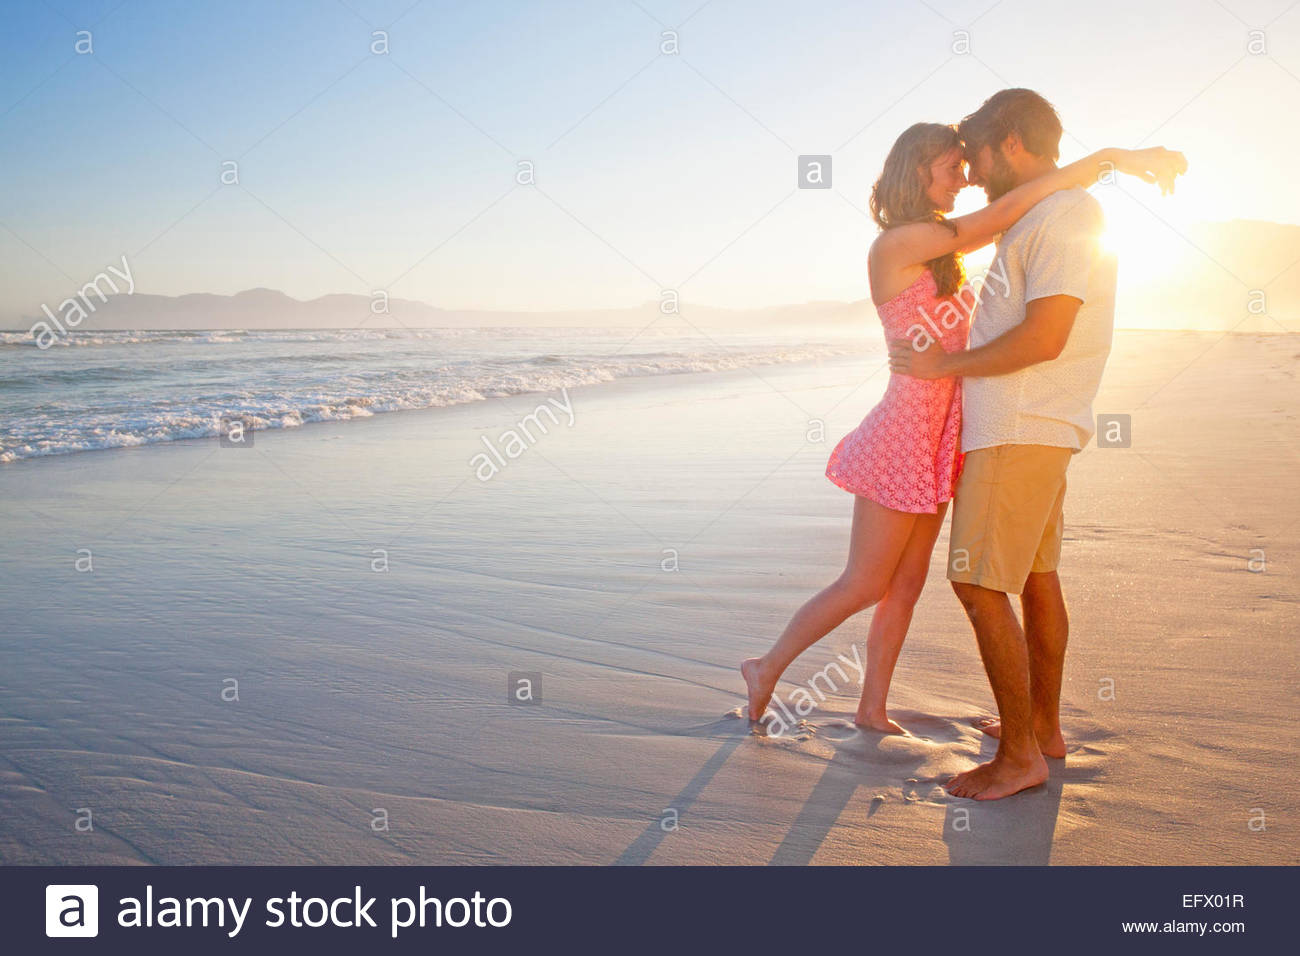 Romantic couple embracing, about to kiss, on sunny beach - Stock Image